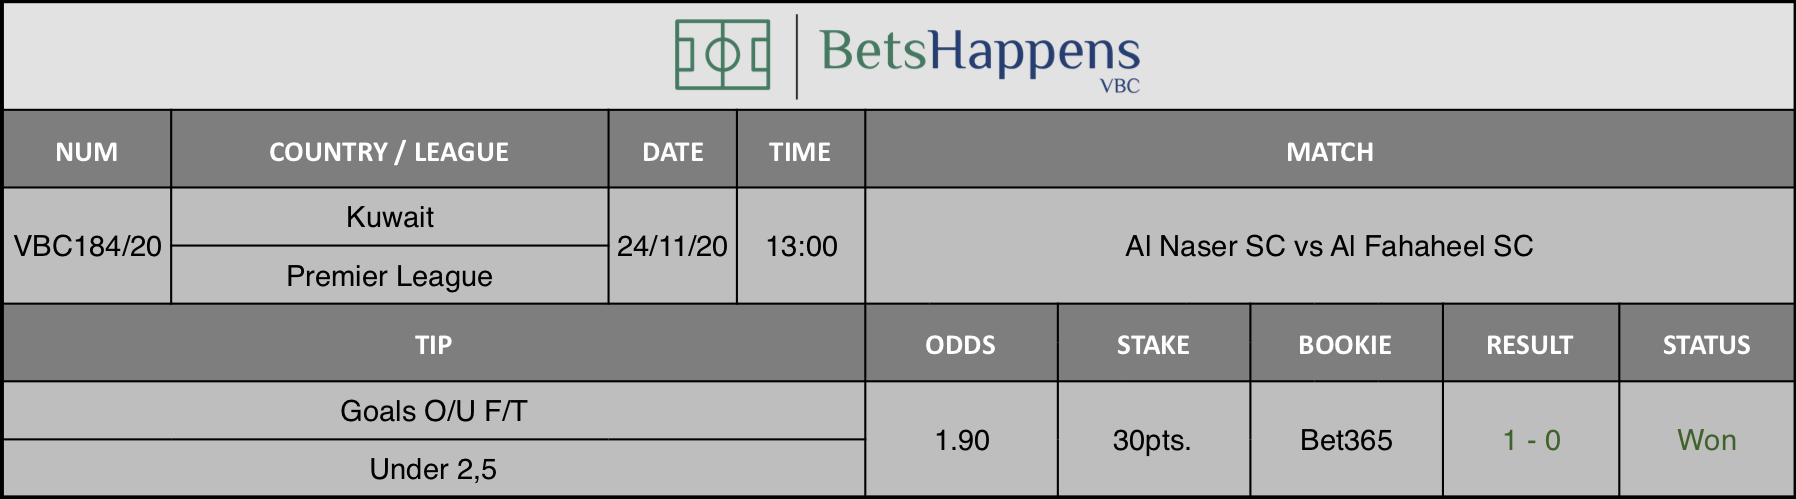 Results of our tip for the Al Naser SC vs Al Fahaheel SC match where Goals O/U F/T Under 2,5 is recommended.